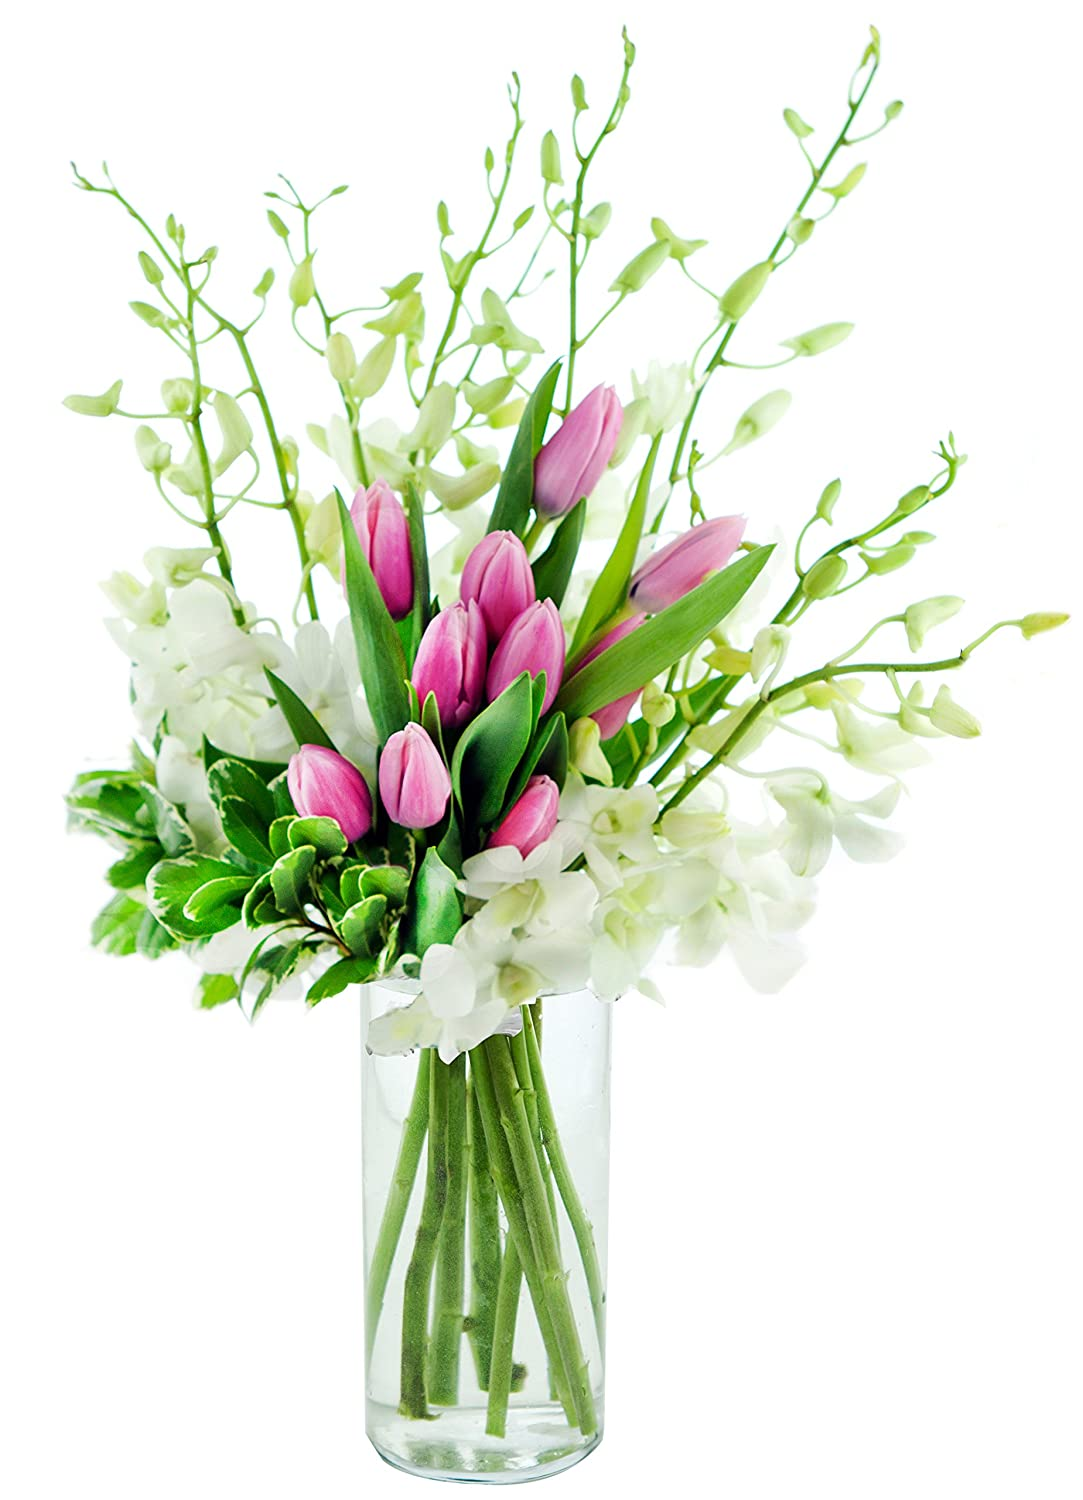 Kabloom Love Notes Pink Tulips and White Orchids with Vase, 2.5 Pound